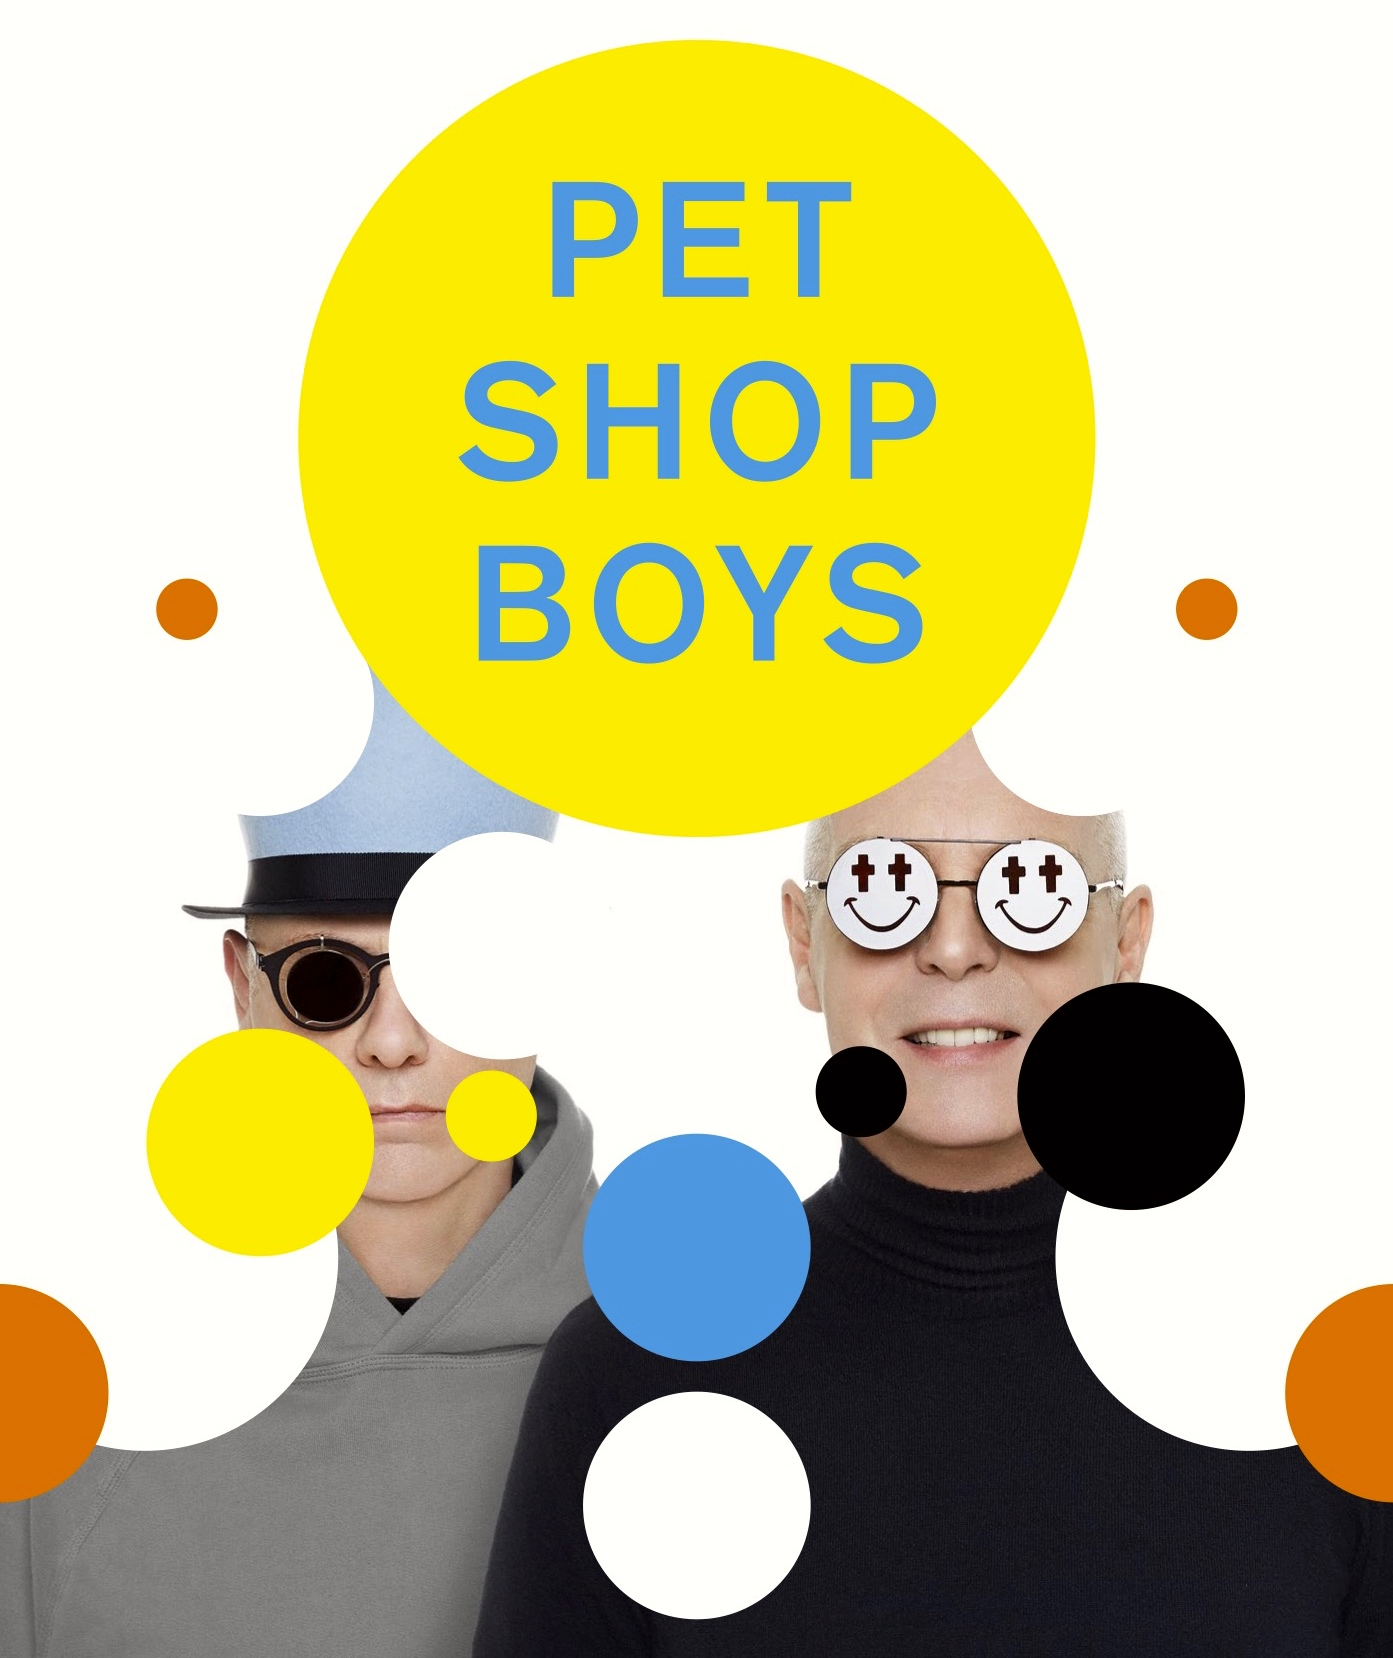 The Super Tour Starts Pet Shop Boys News